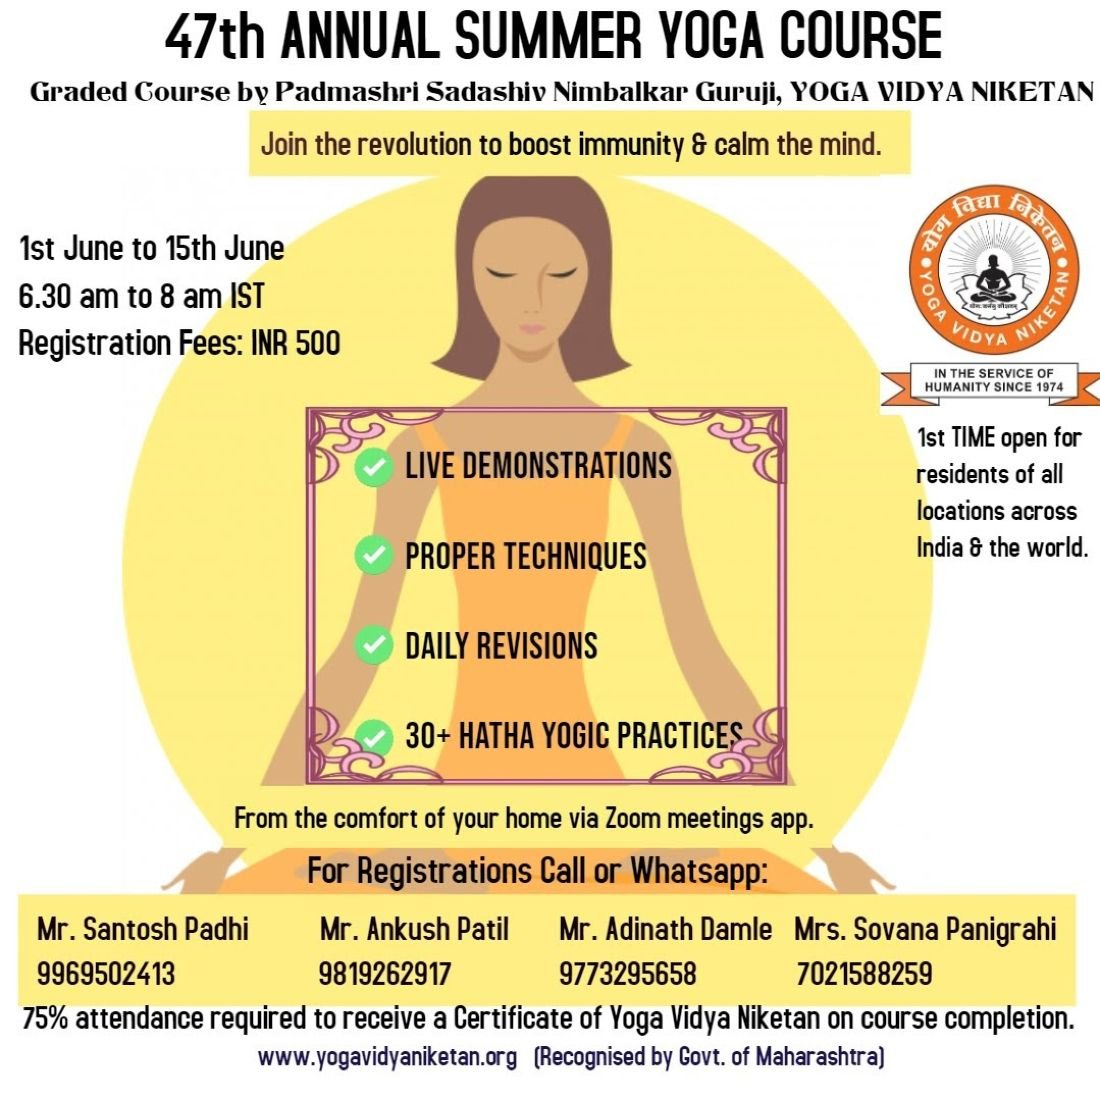 47th Yoga Summer Course Yoga Vidya Niketan Invited By Santosh Padhi On Allevents In Online Events